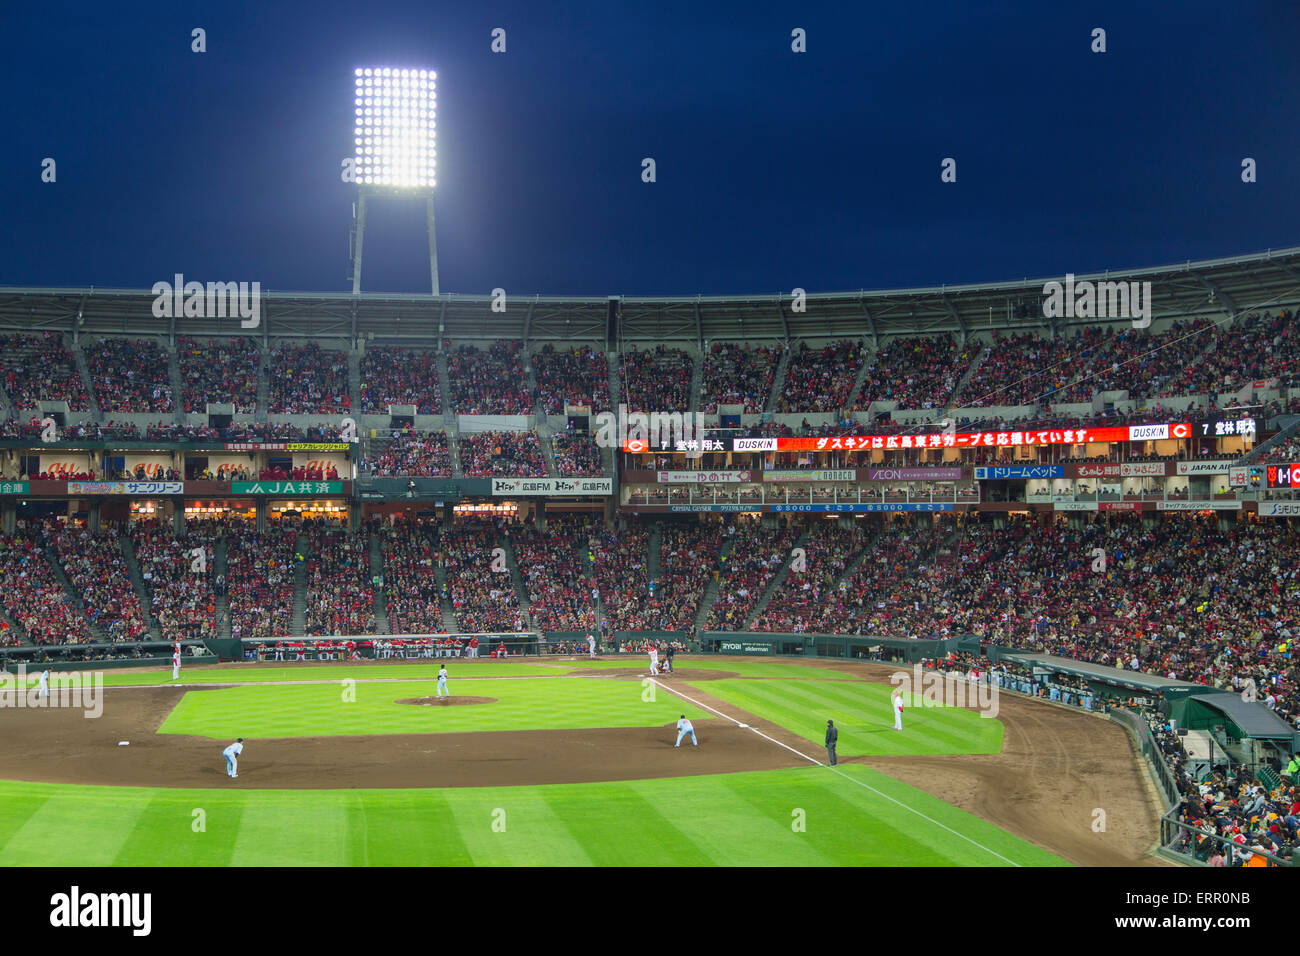 Baseball match of Hiroshima Toyo Carps inside MAZDA Zoom-Zoom Stadium, Hiroshima, Hiroshima Prefecture, Japan - Stock Image